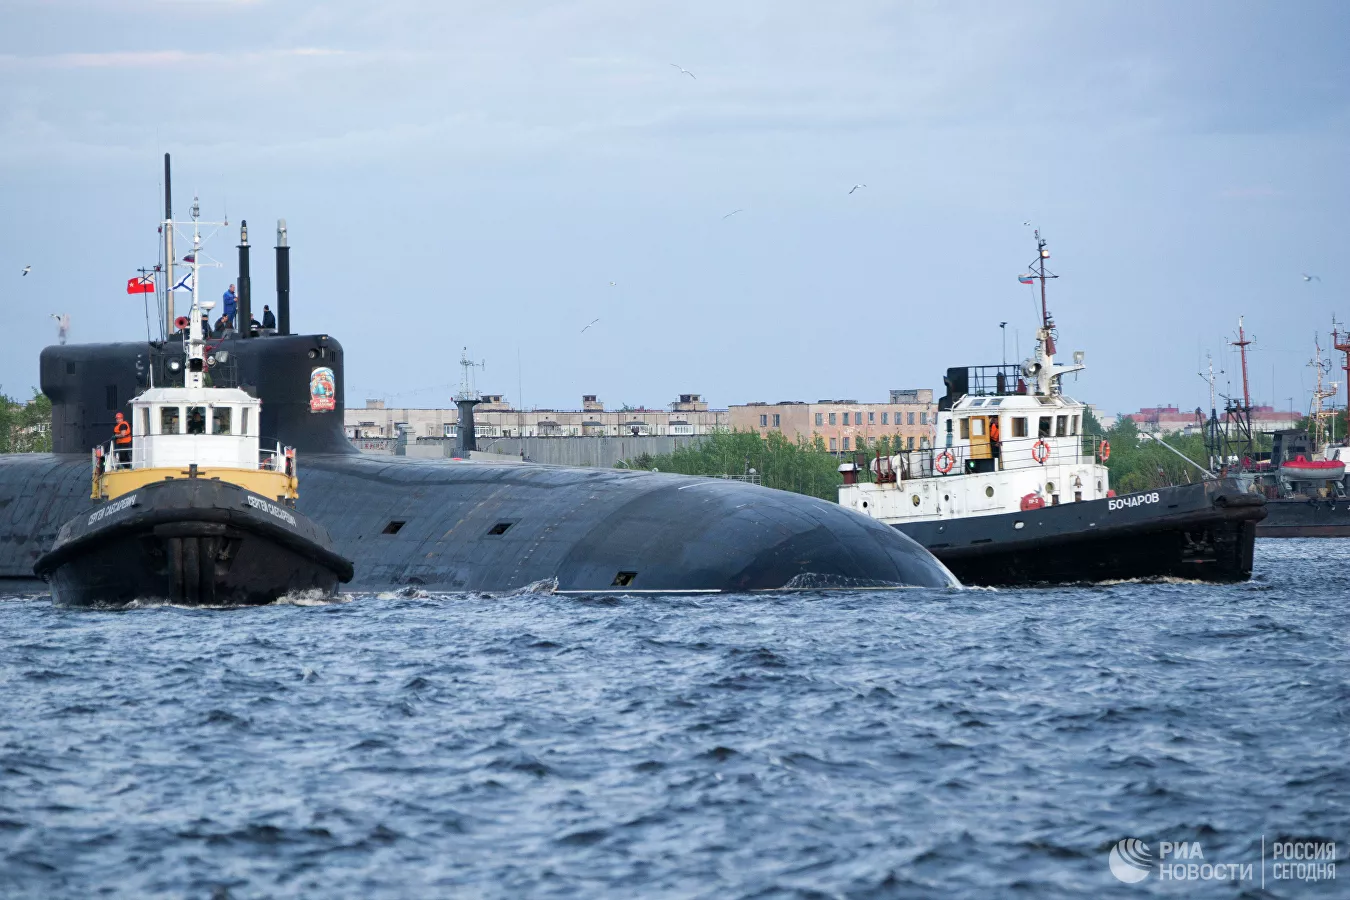 Russia's Nuclear-Powered Missile Carrier Submarine Knyaz Vladimir Entered Combat Duty